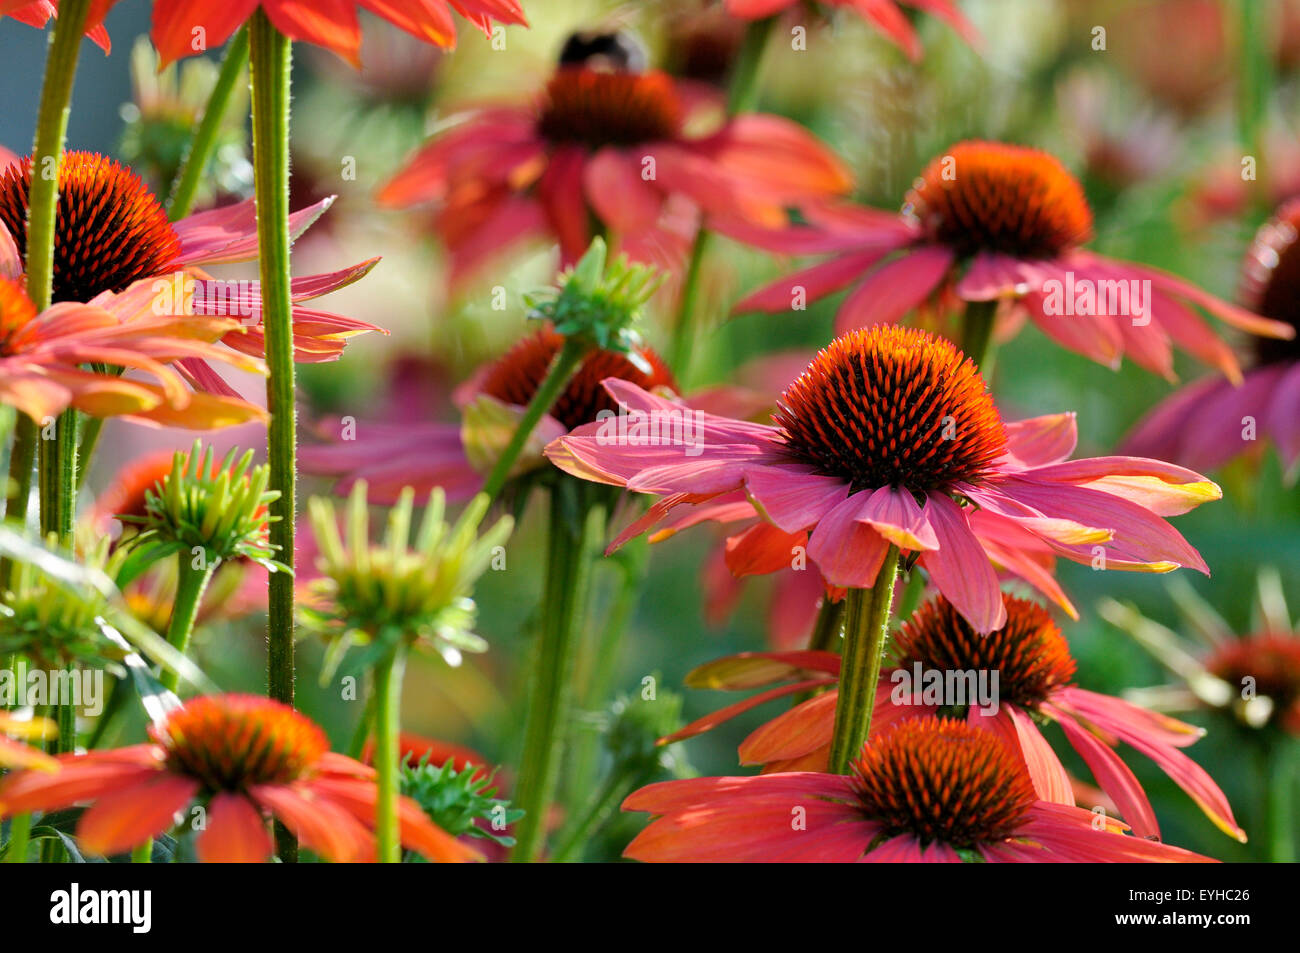 Coneflowers, hybrid, variety Hot Summer (Echinacea sp.), North Rhine-Westphalia, Germany - Stock Image